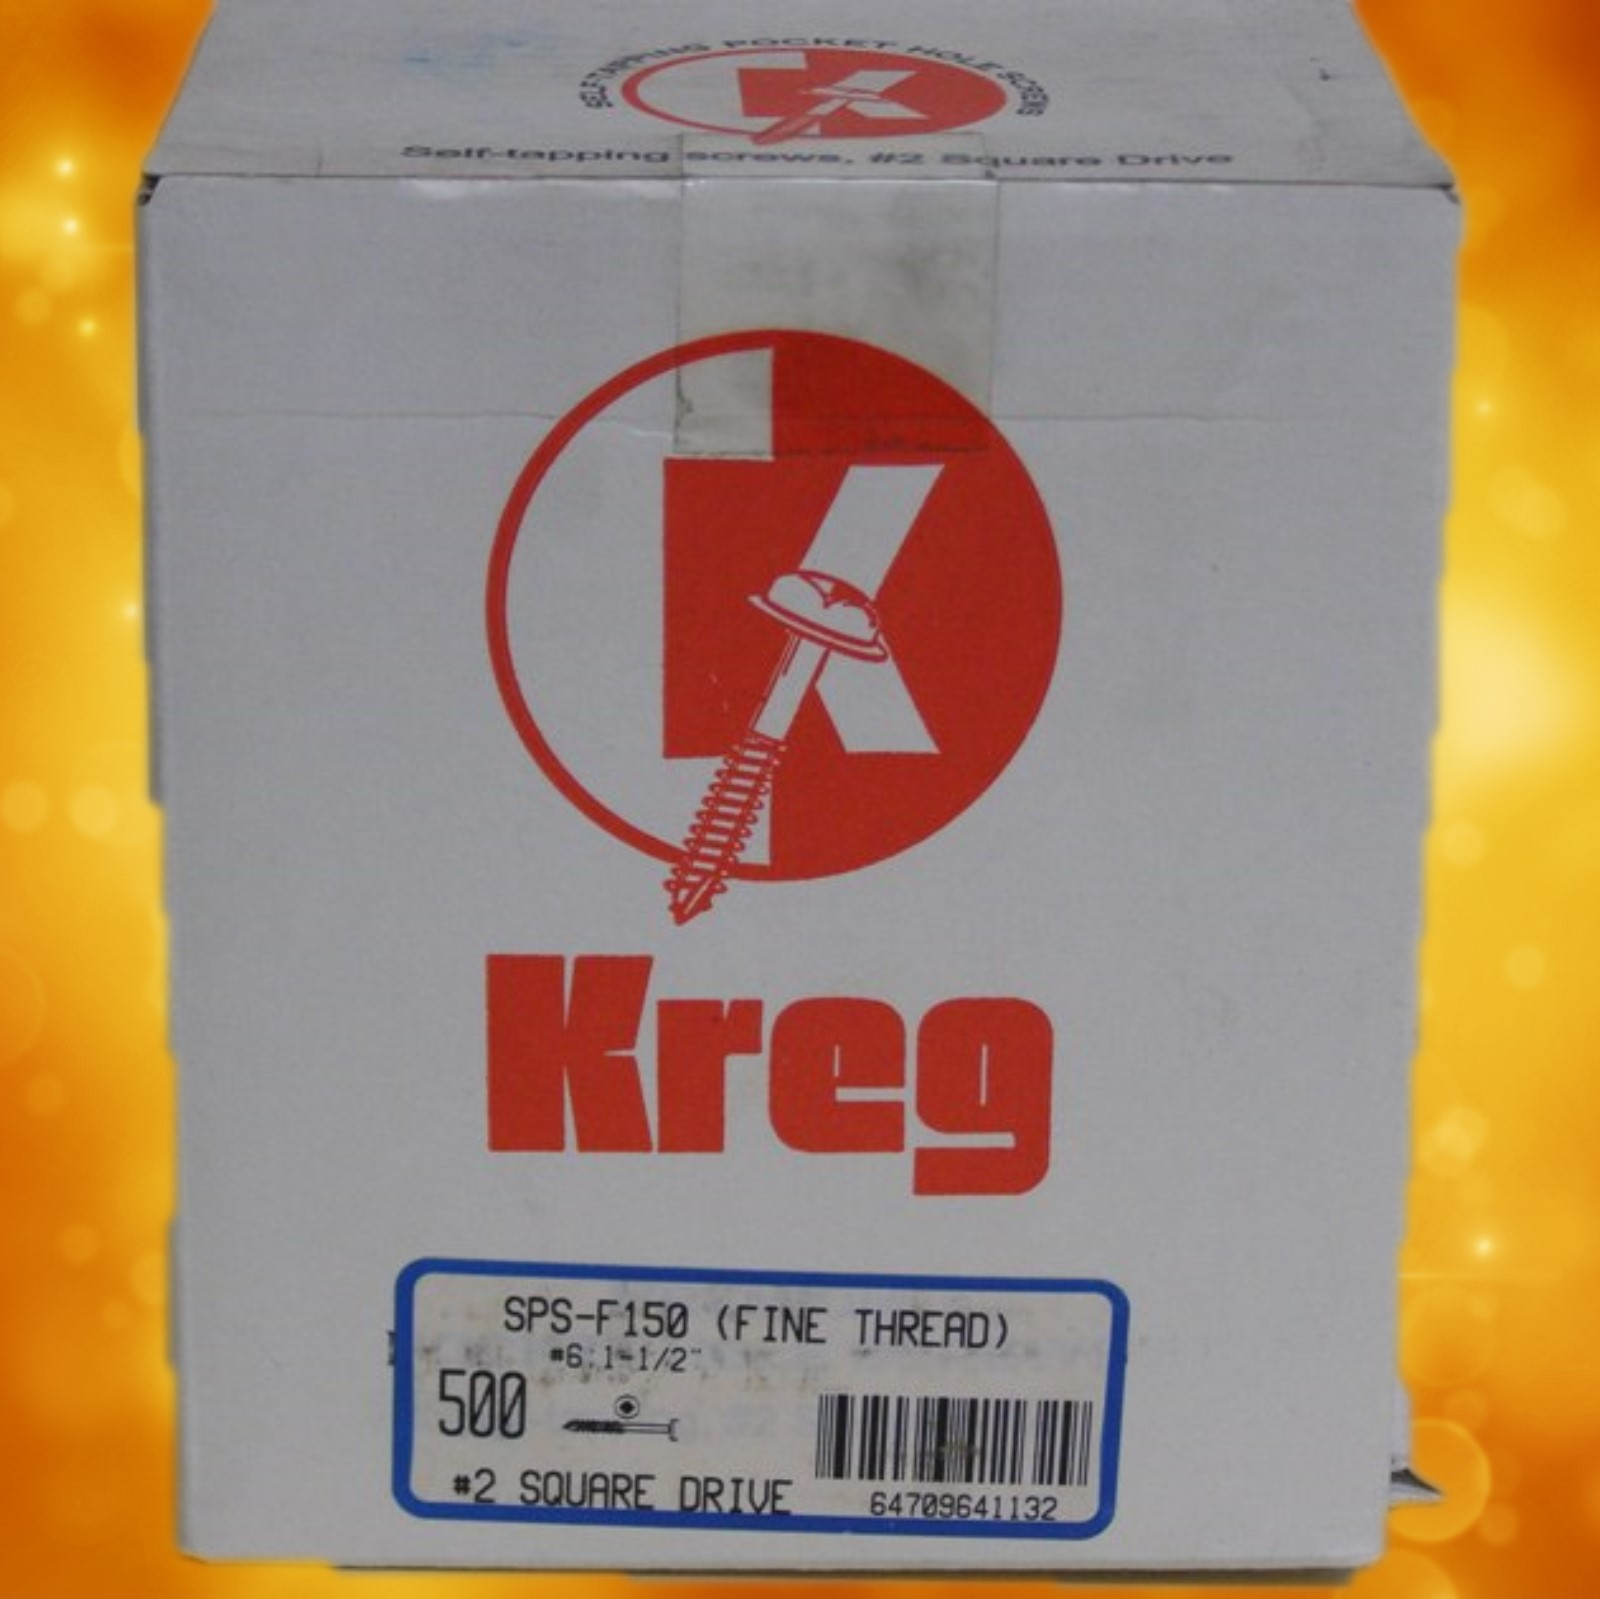 "Kreg Pocket Hole Screws SPS-F150-500 Kreg 1-1/2"" #7, Self-Tapping, Fine-Thread, Pan Head, 500 count SPS-F150-500"